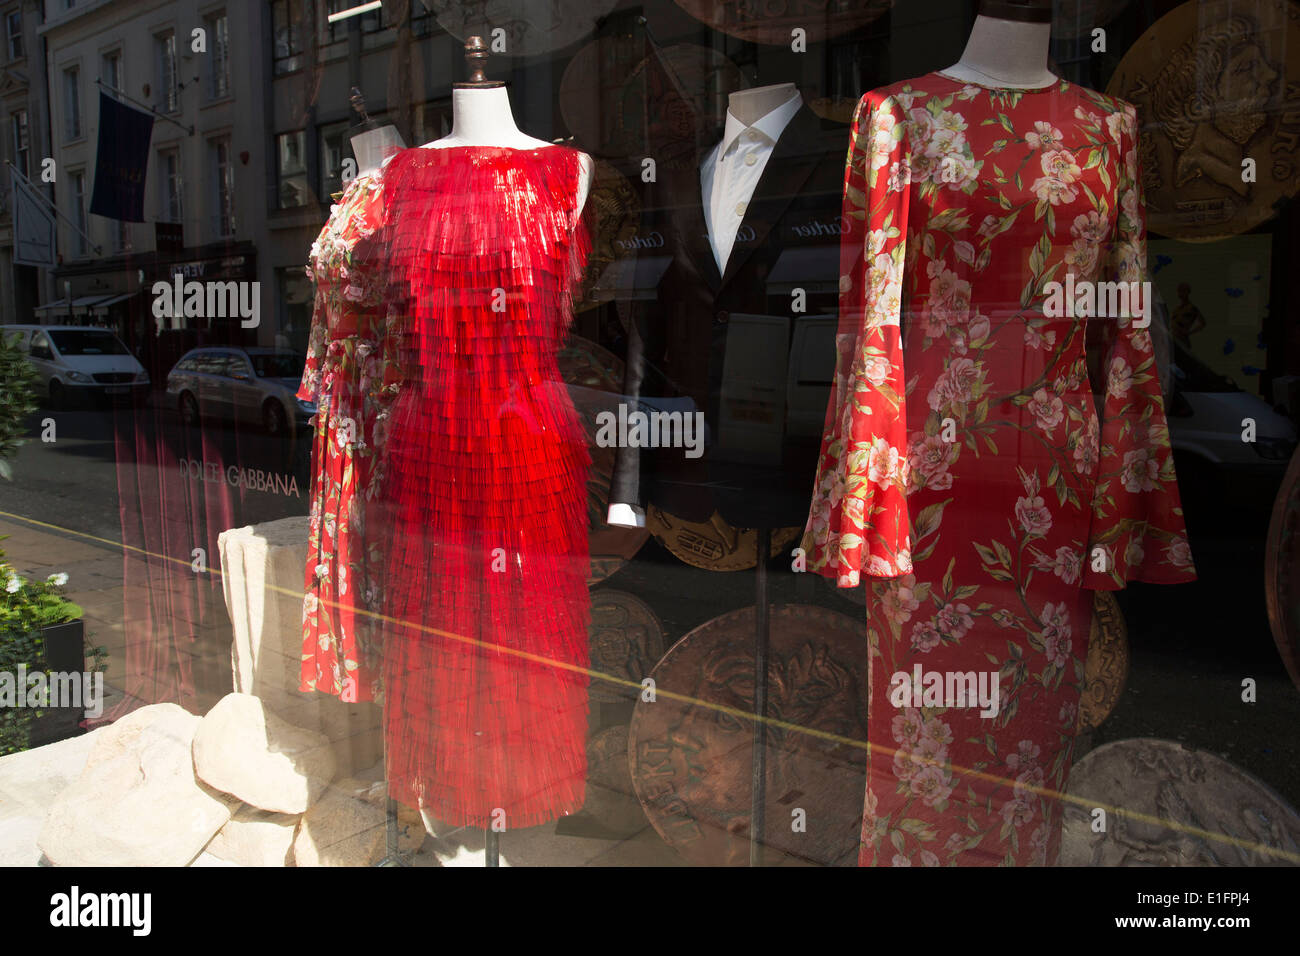 5353c89f4d Red dresses for sale in the Dolce and Gabbana shop on Bond Street, London,  UK.